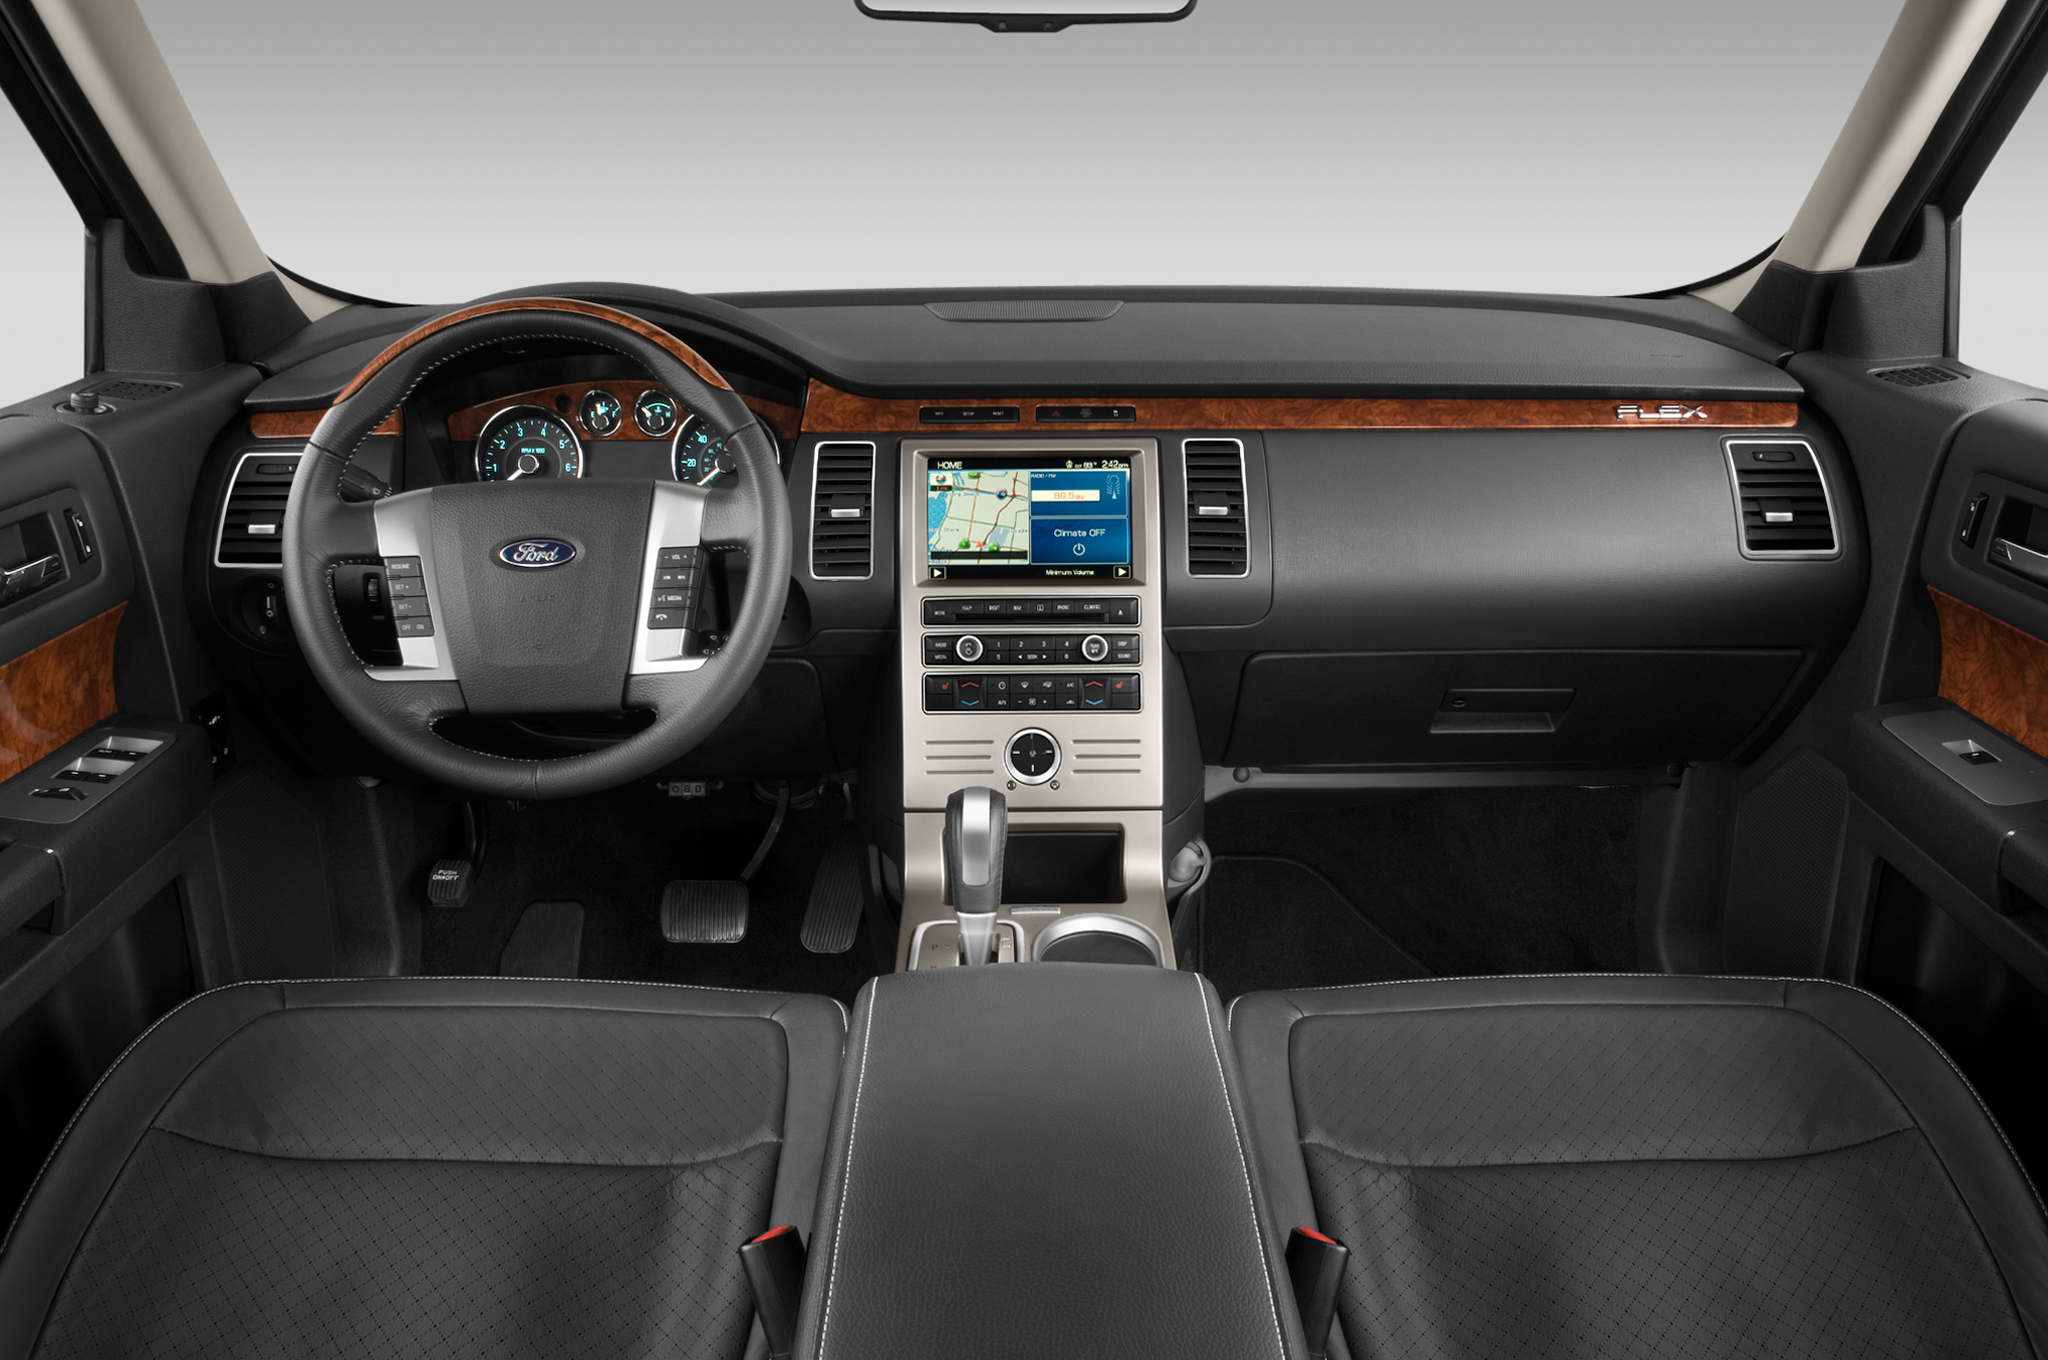 service manual  2013 ford flex dash owners manual Ford Flex Warning Lights Ford Flex Manual PDF